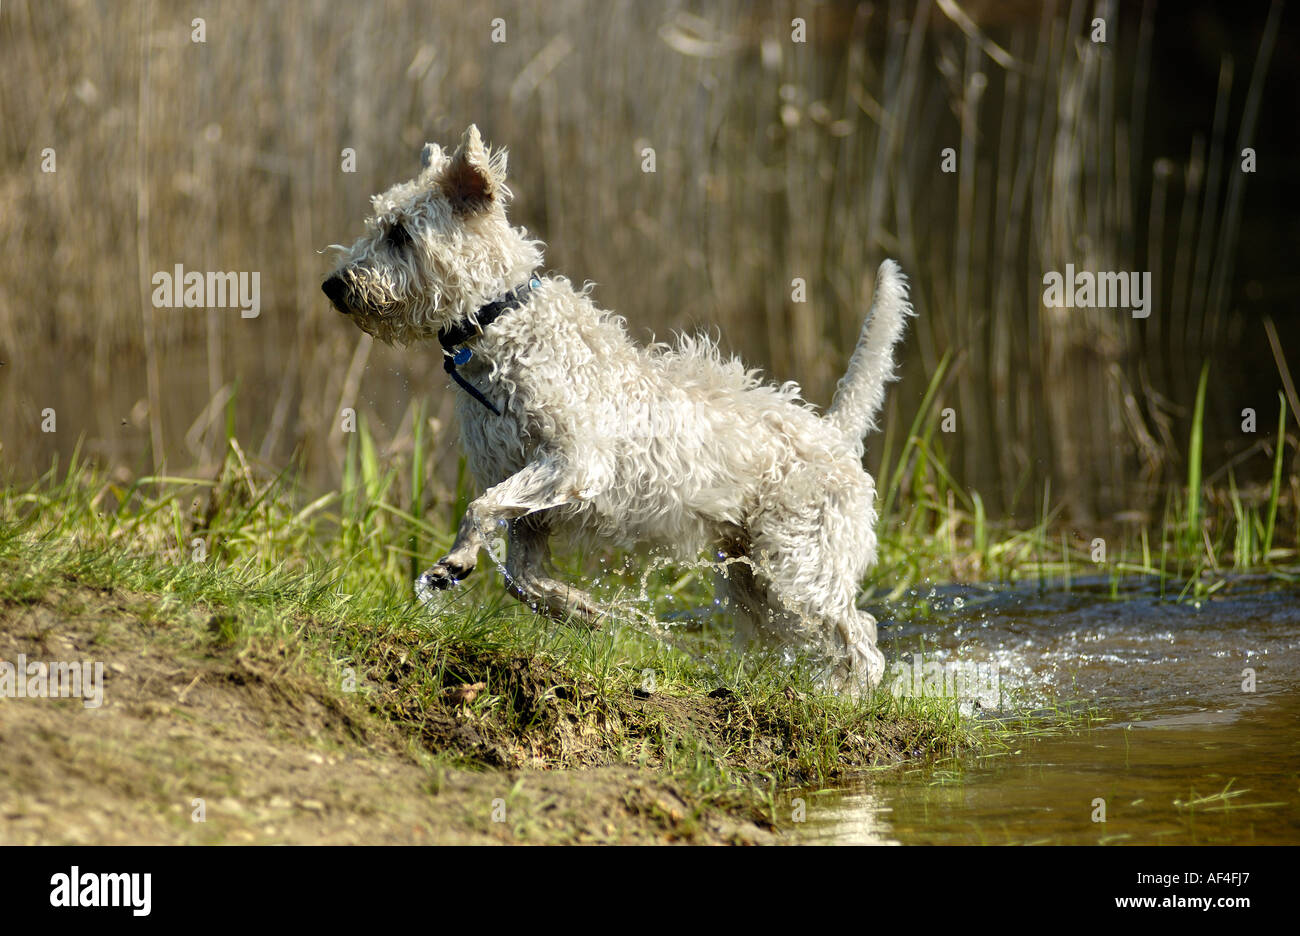 Poodle mongrel jumping on a pond's edge - Stock Image